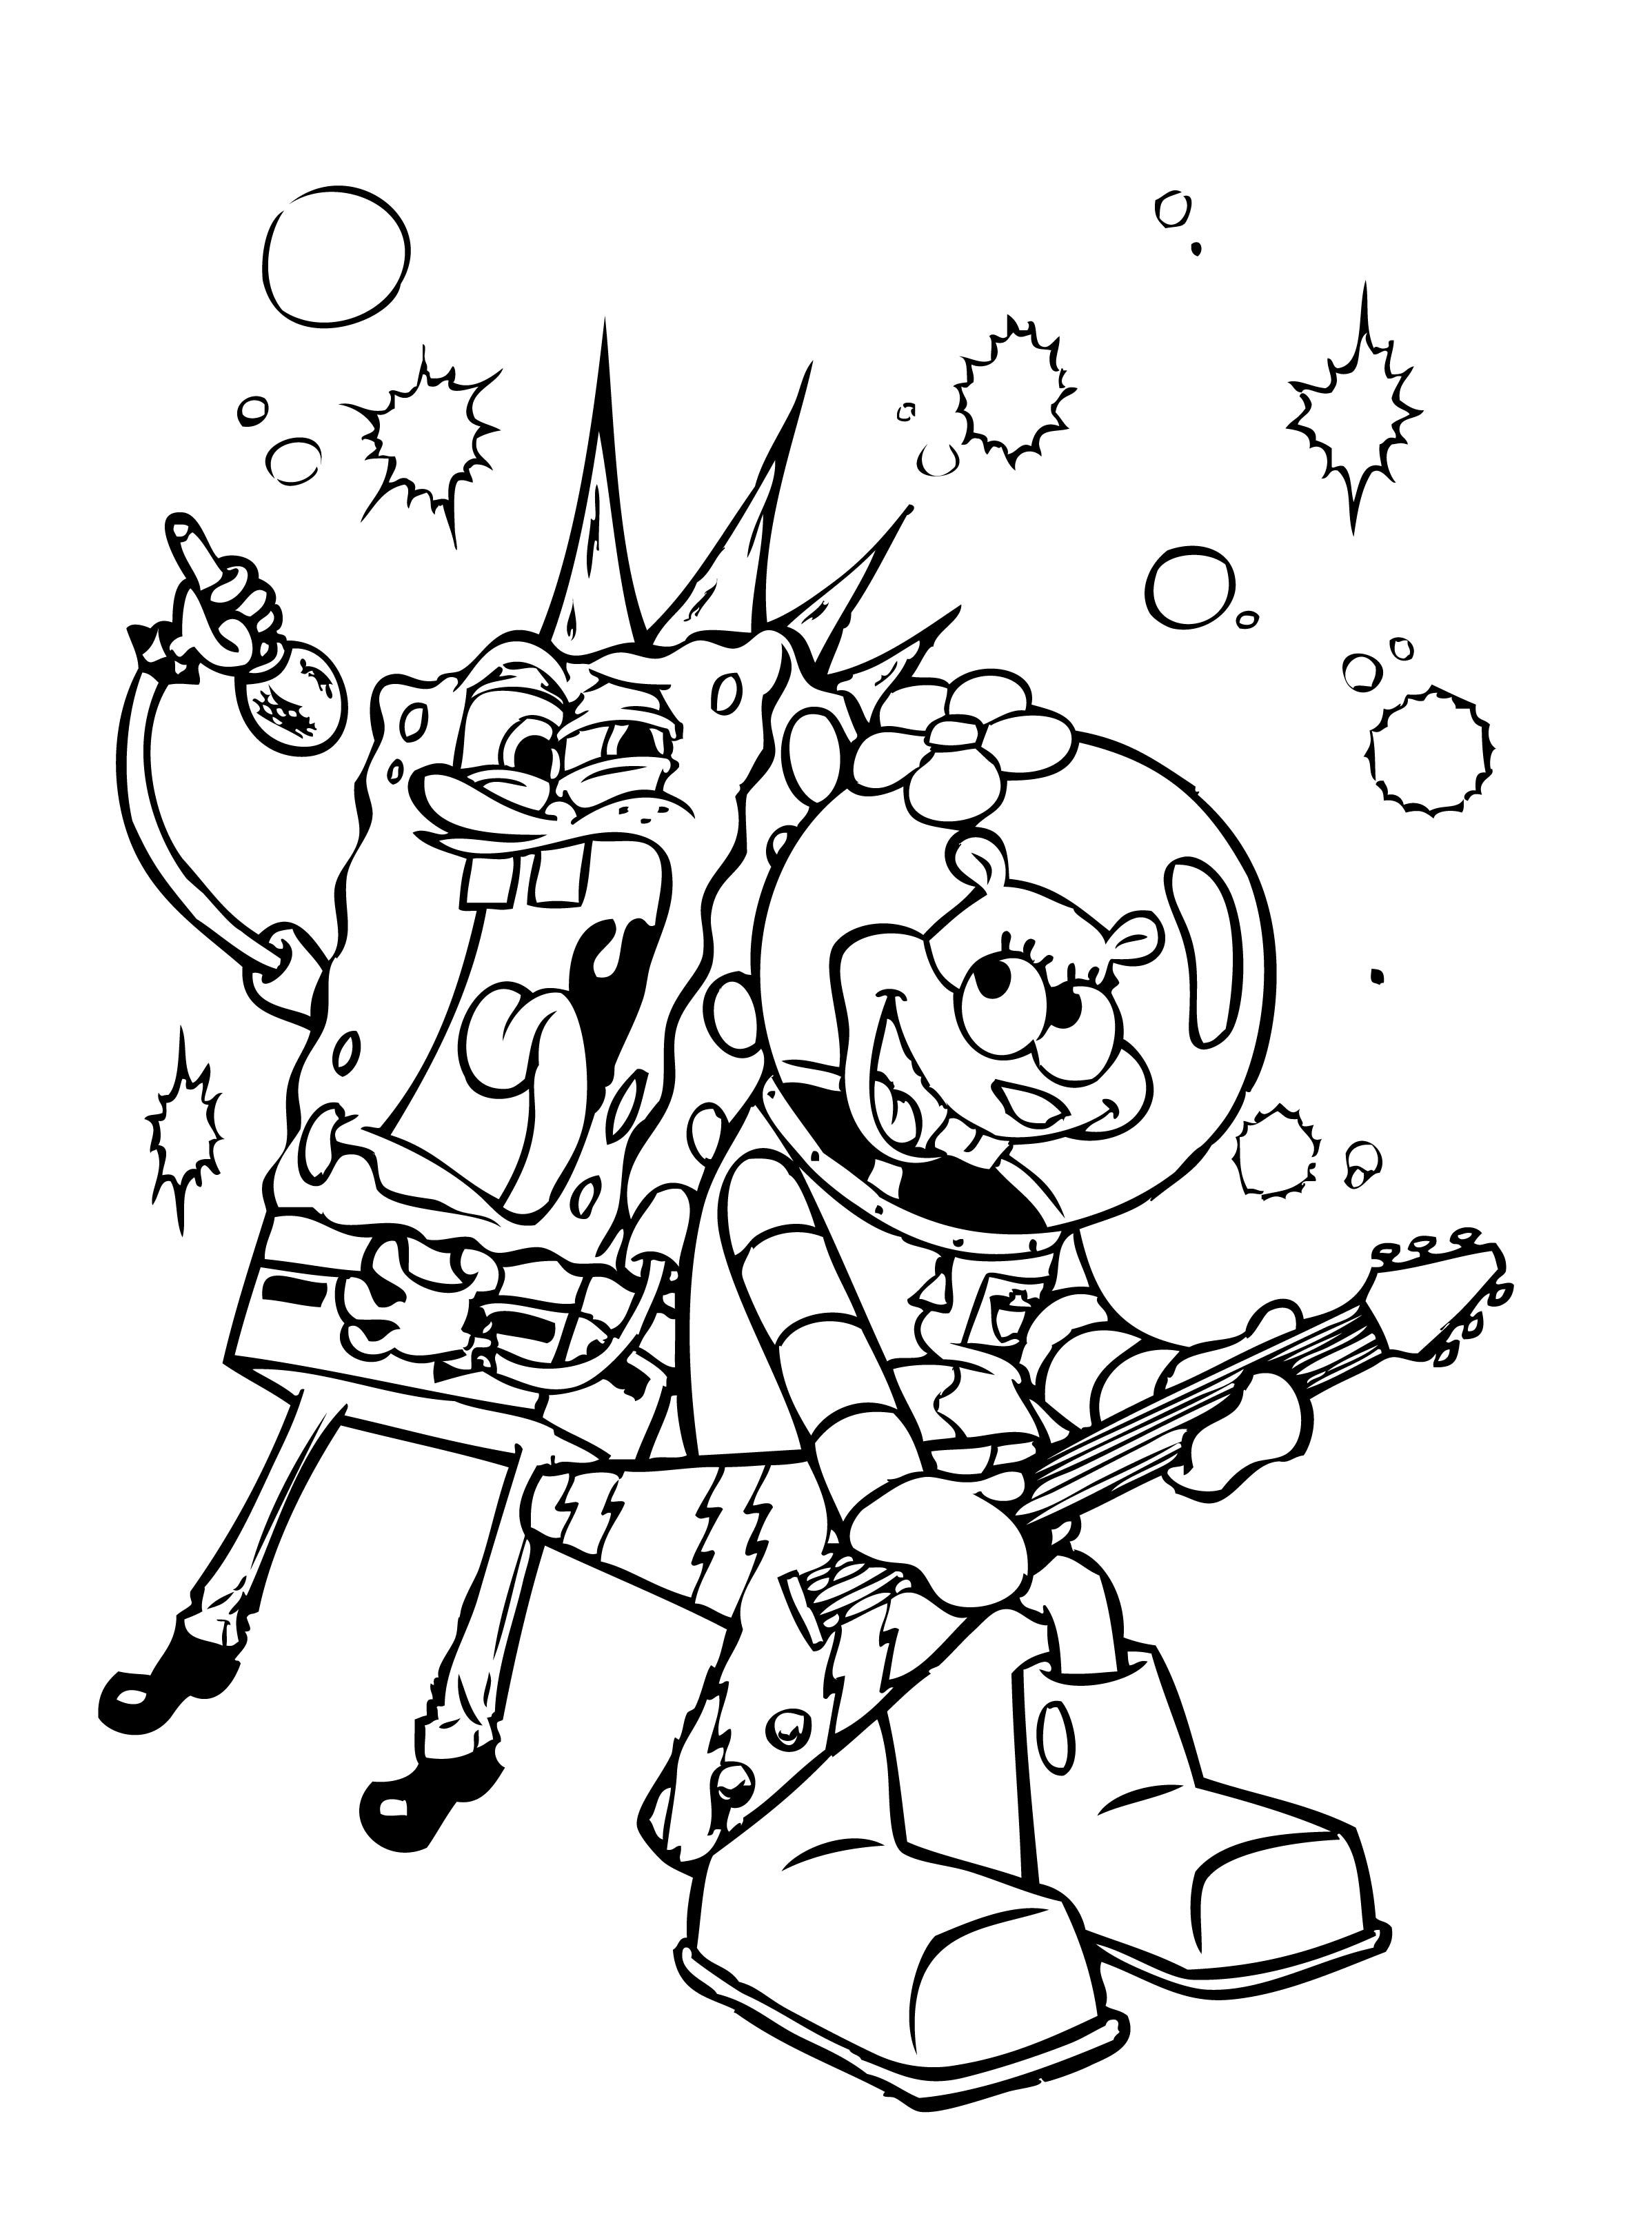 Pin By Misti On Bikini Bottom Birthday Bash Cartoon Coloring Pages Star Coloring Pages Valentines Day Coloring Page